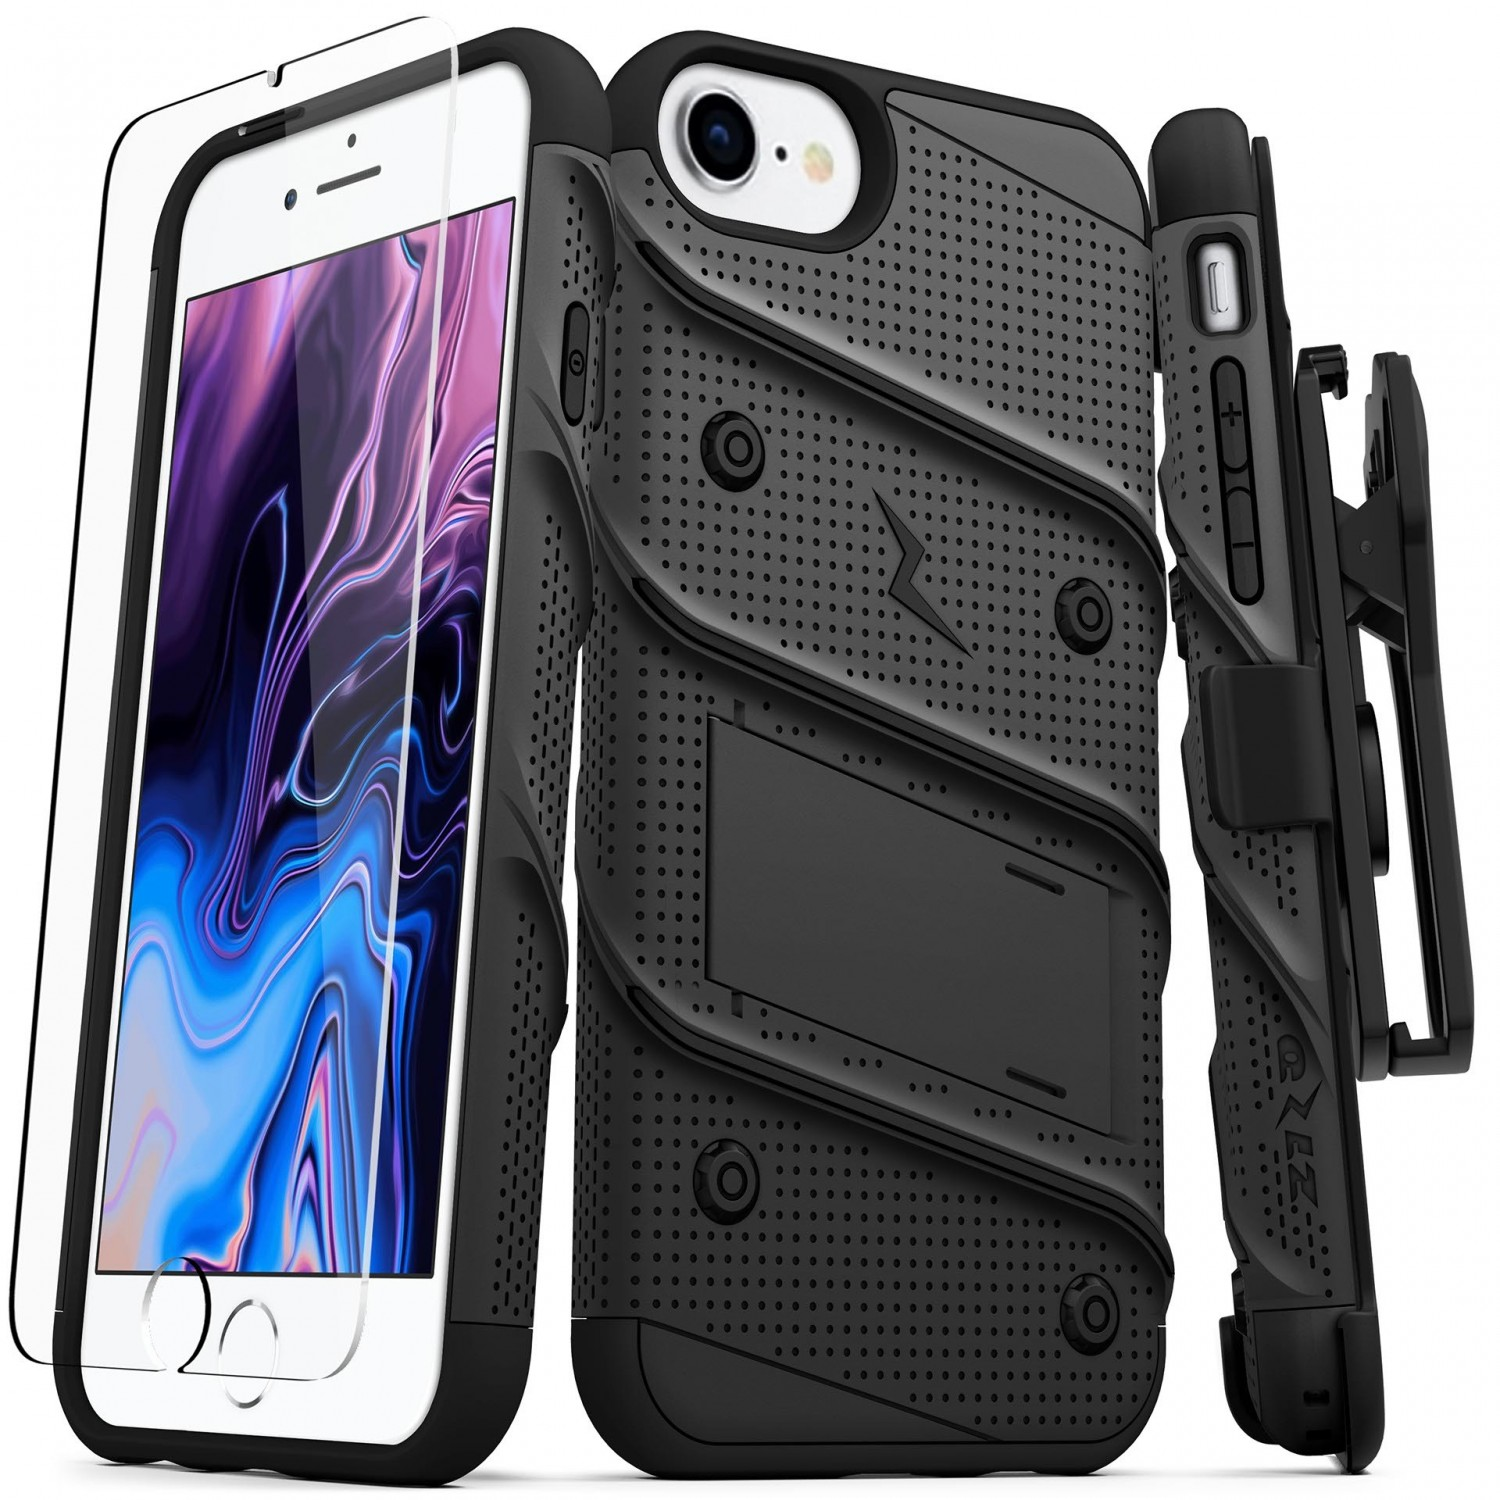 . Funda ZIZO Bolt iPhone SE2/8/7/6s/6 Negro/Negro